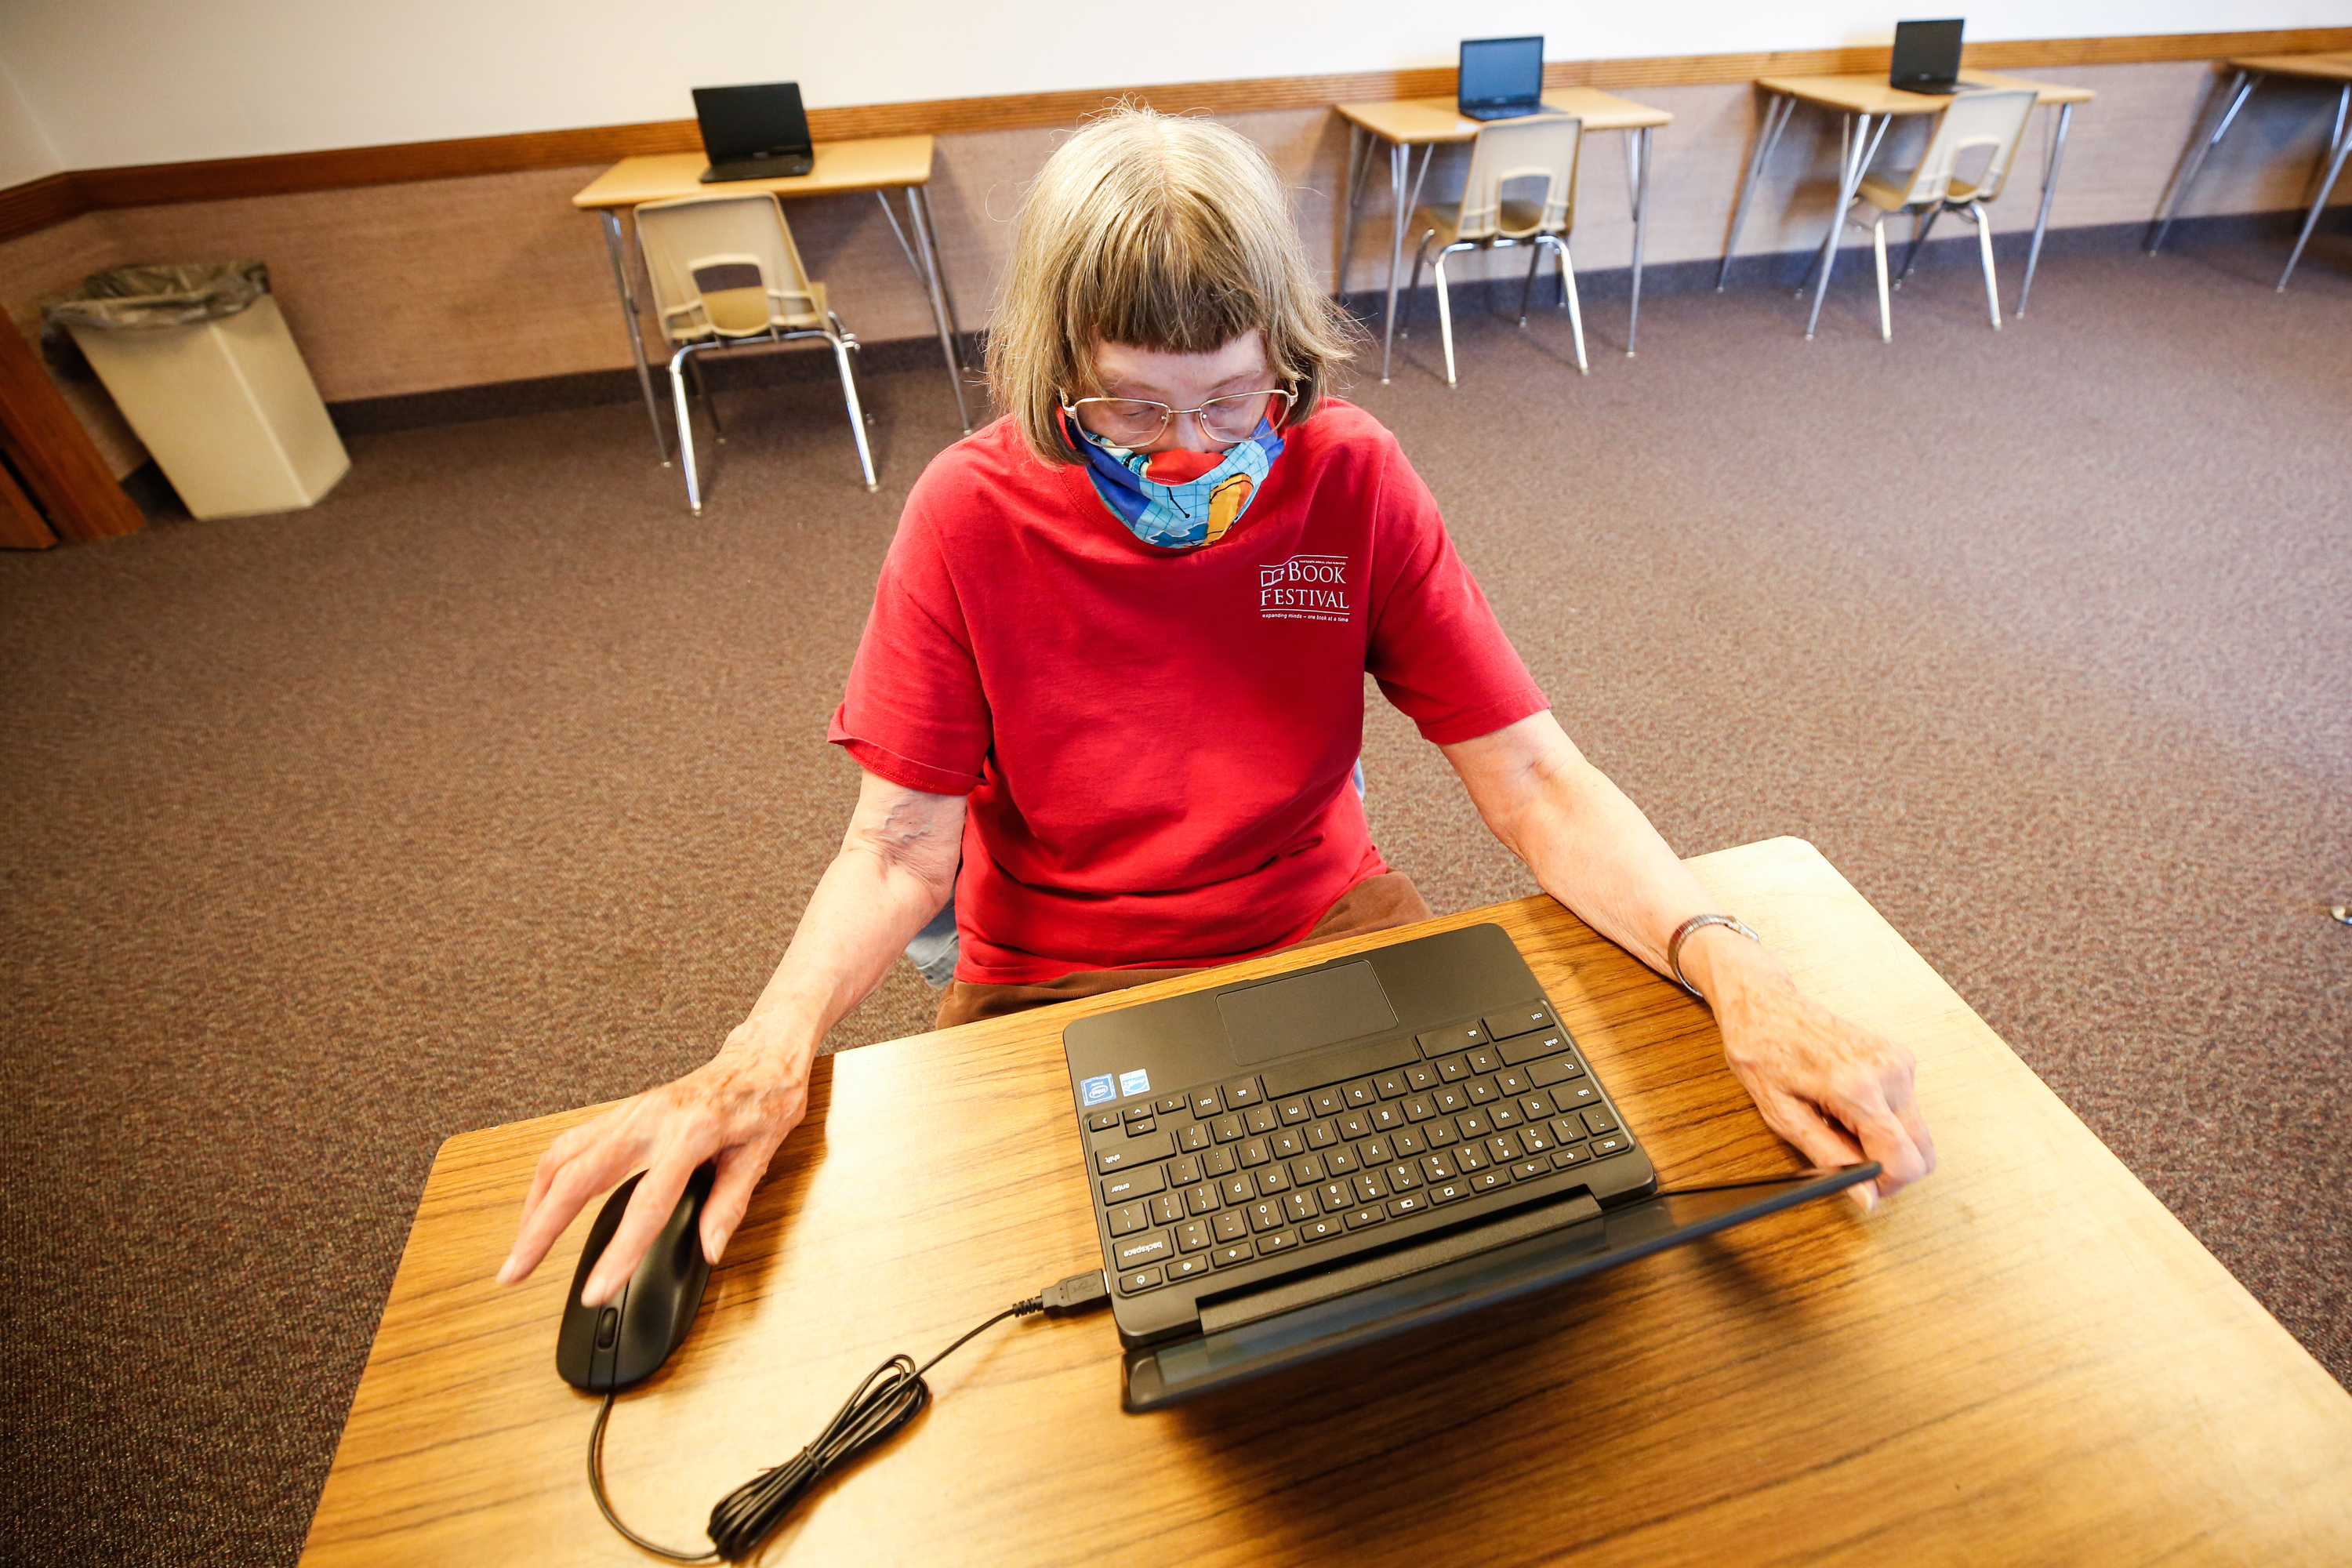 Allene Dotson surfs the internet on a laptop at Rose Park Stake Center of The Church of Jesus Christ of Latter-day Saints in Salt Lake City on Thursday, Aug. 6, 2020. It is part of a program for people in the community who don't have internet access in their home.